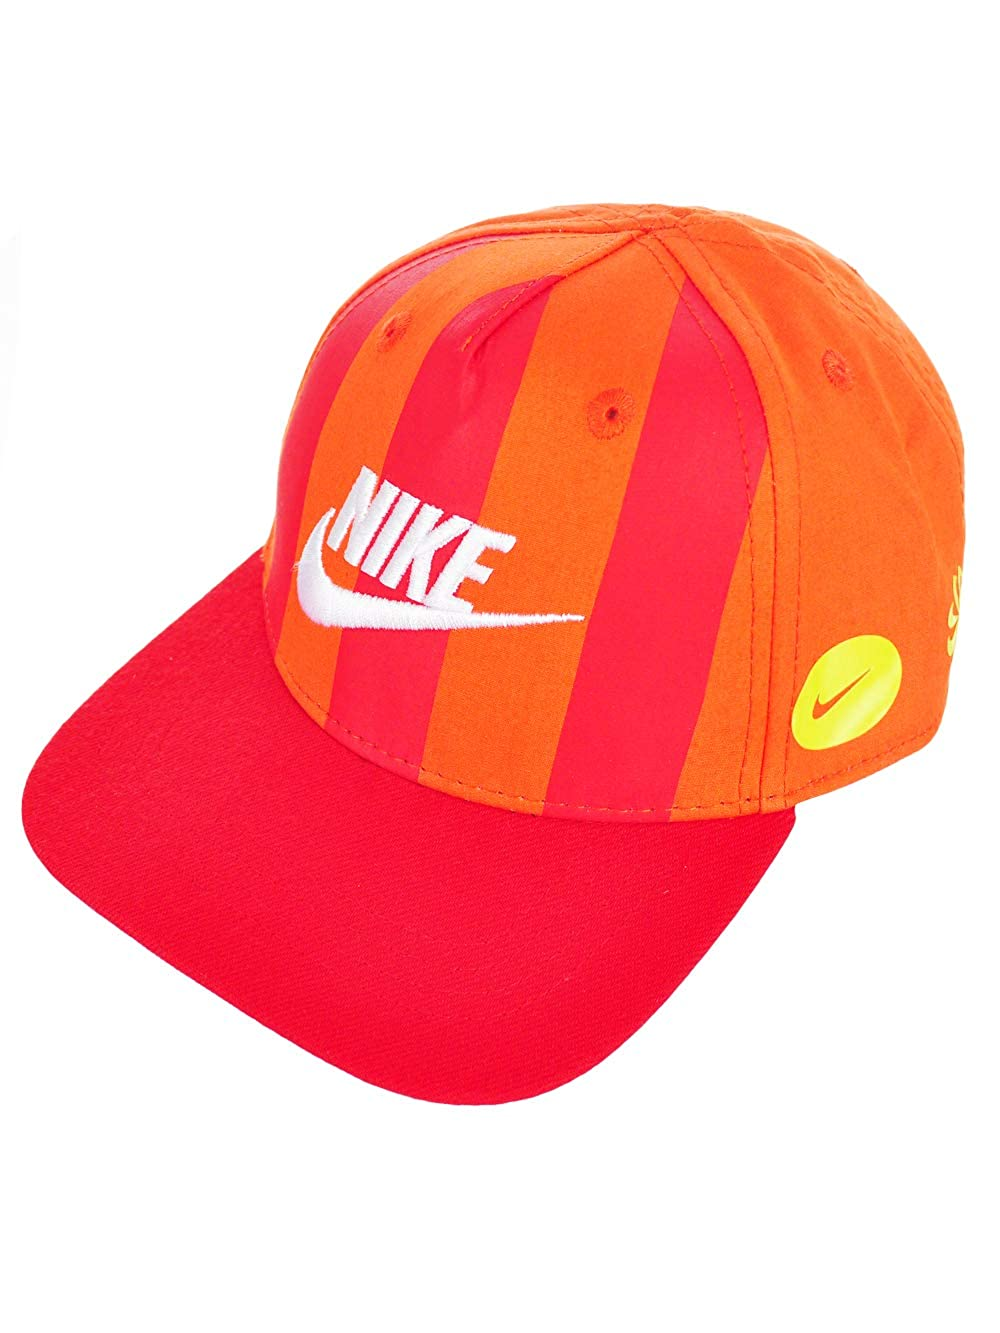 Nike Baby Boys' Snapback Cap (One Size) 12-24 months